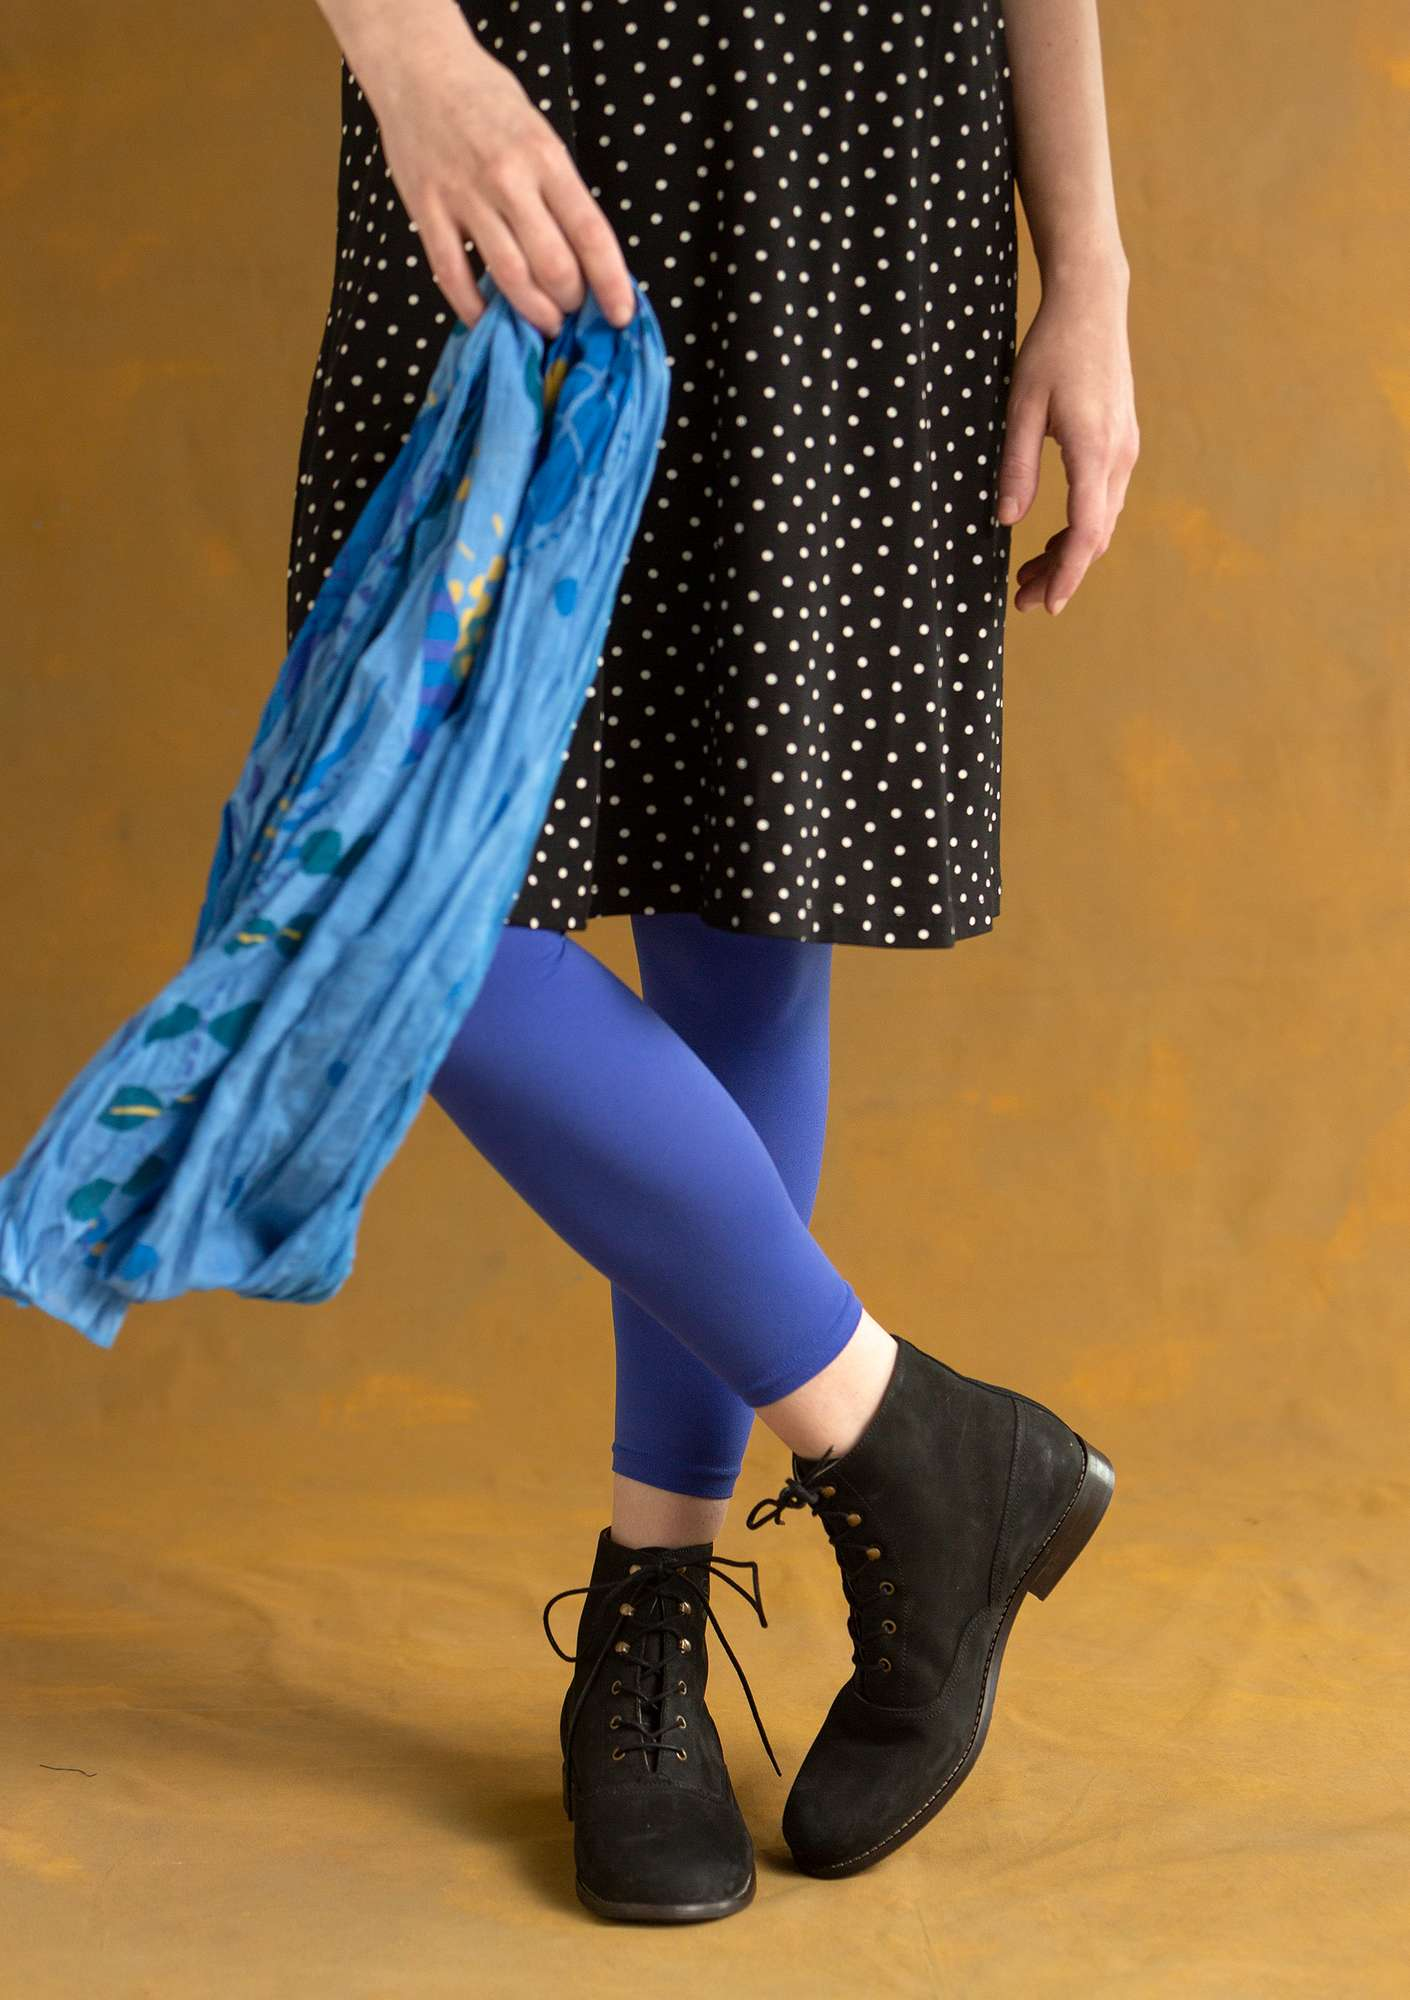 Ensfarvede leggings lupin